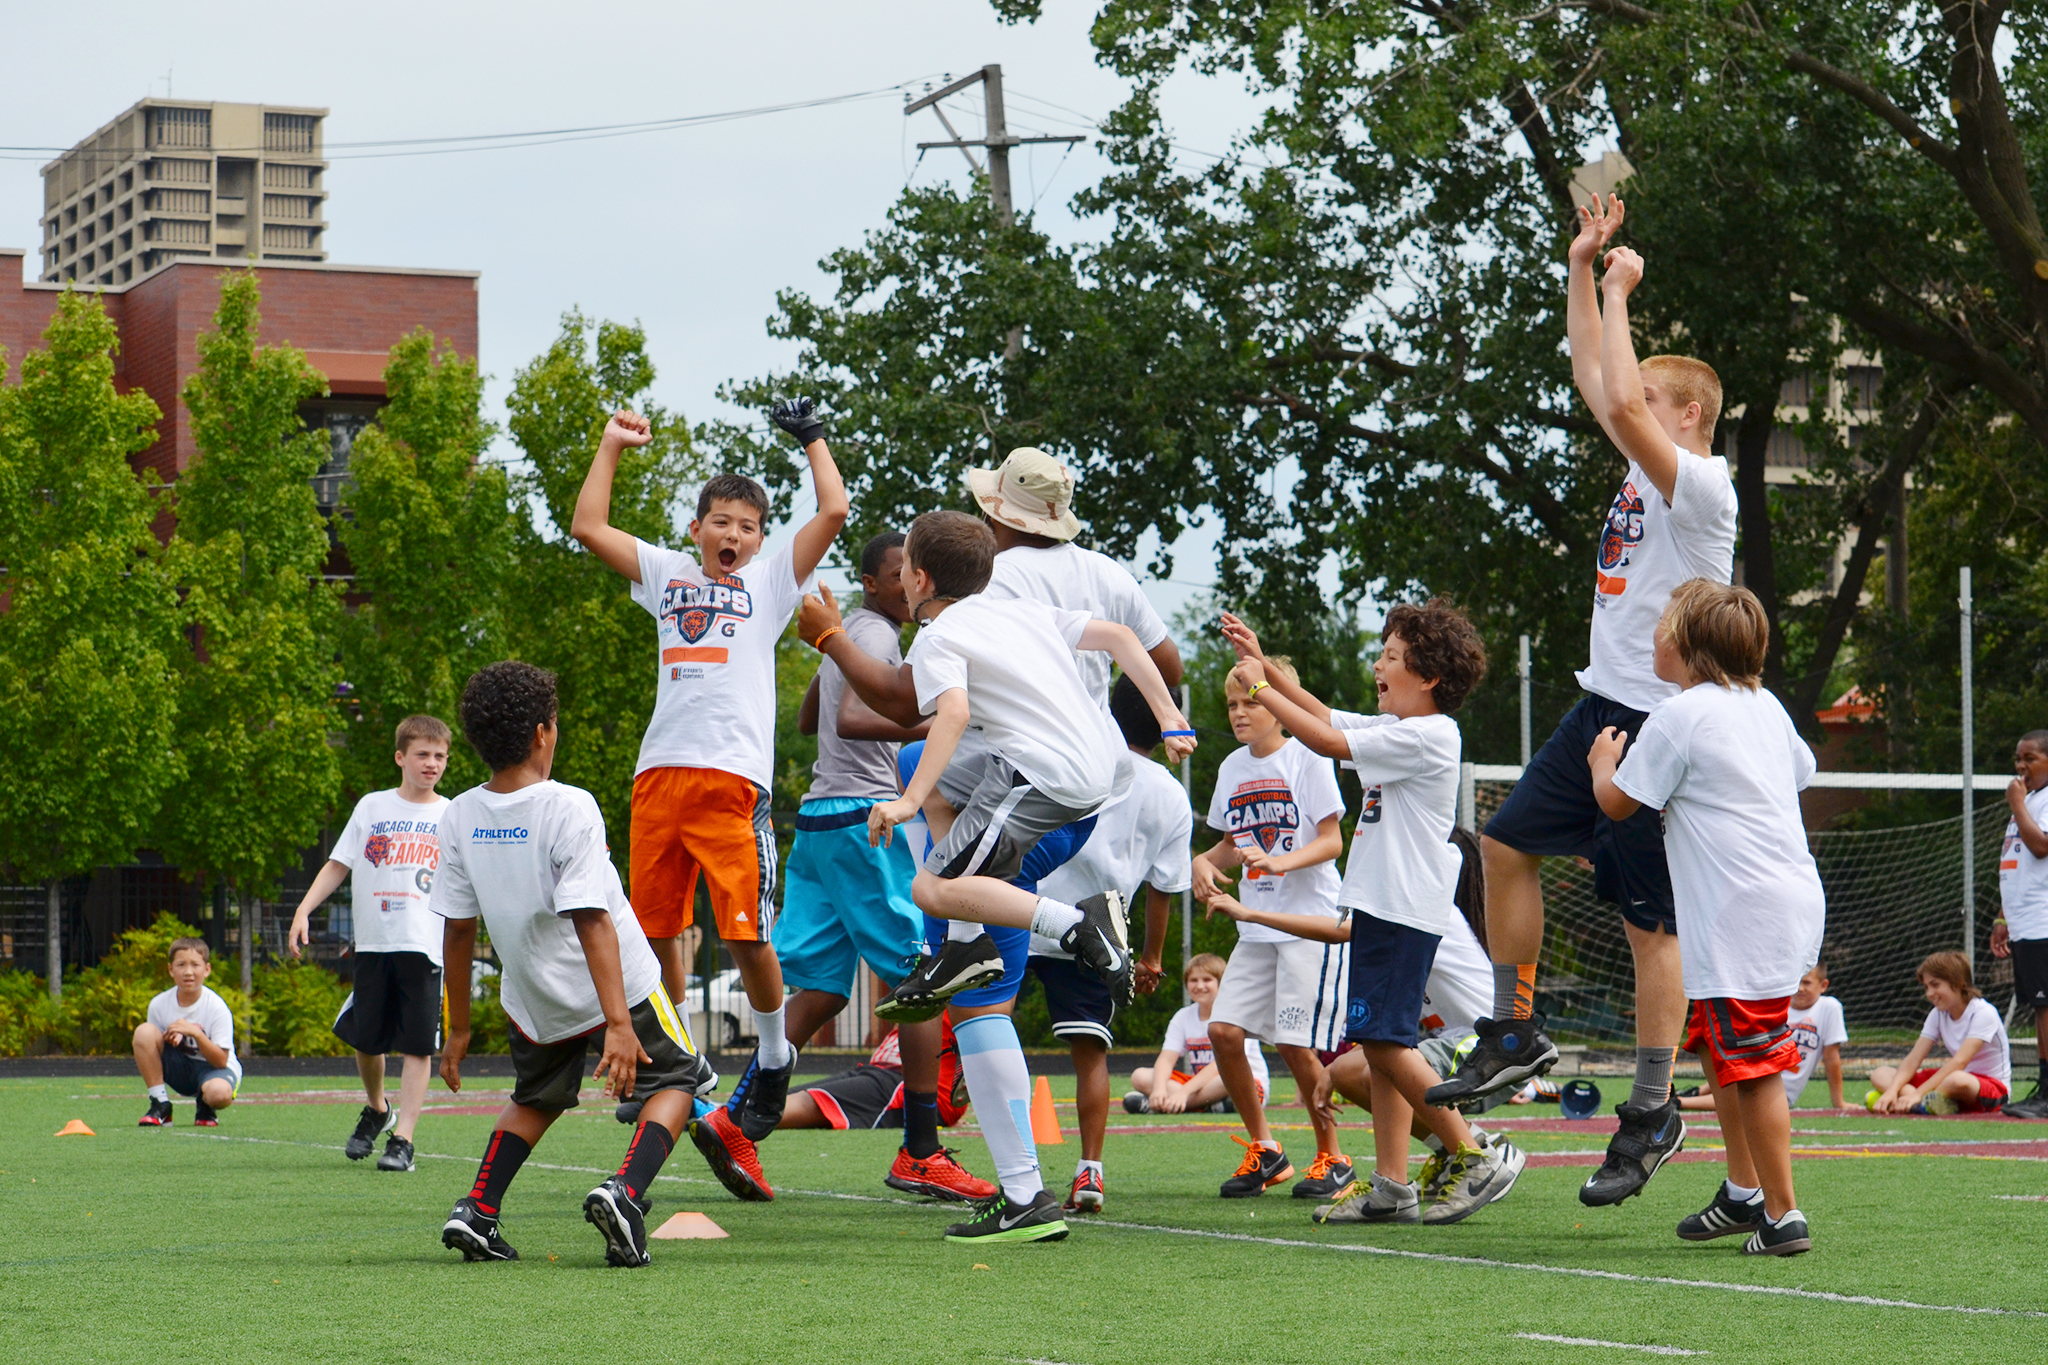 Your guide to Chicago's best summer camps